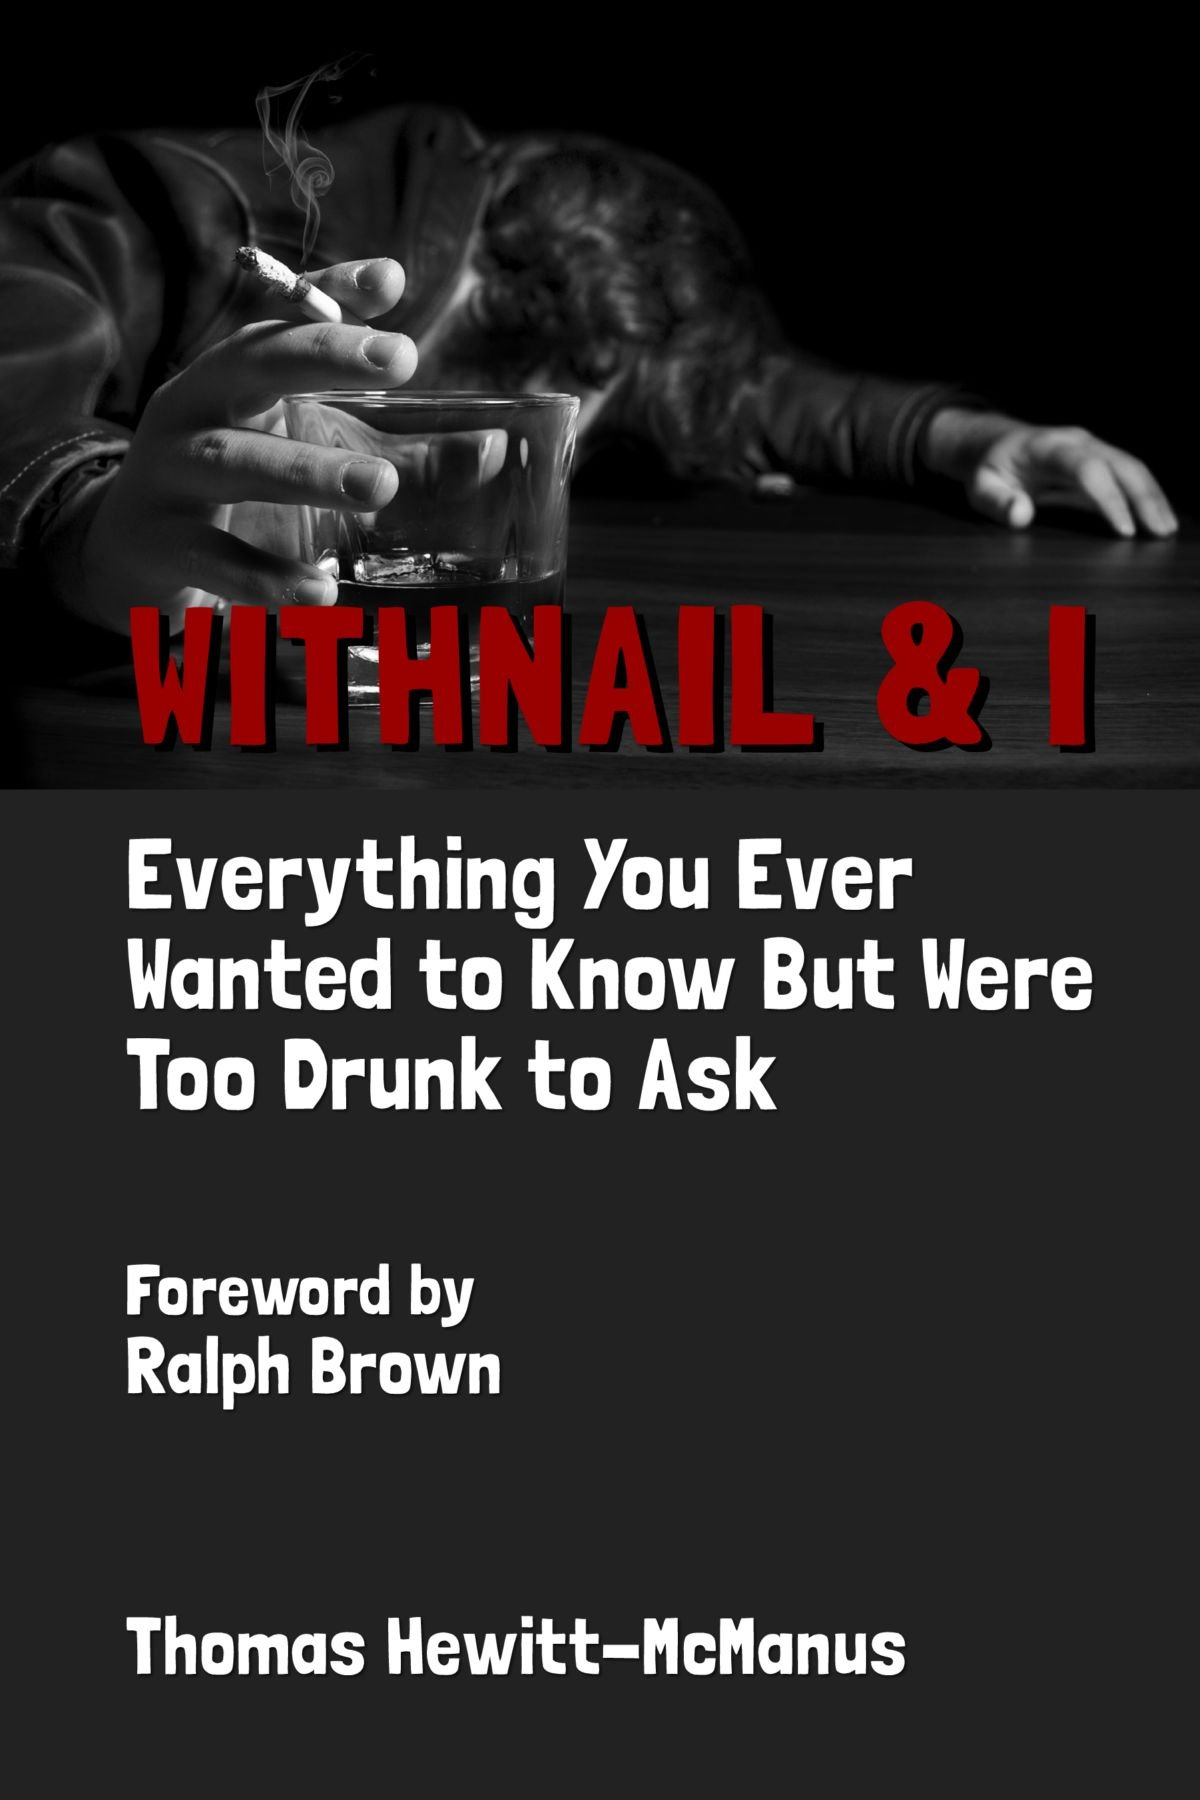 Withnail & I: Everything You Ever Wanted To Know But Were Too Drunk To Ask PDF